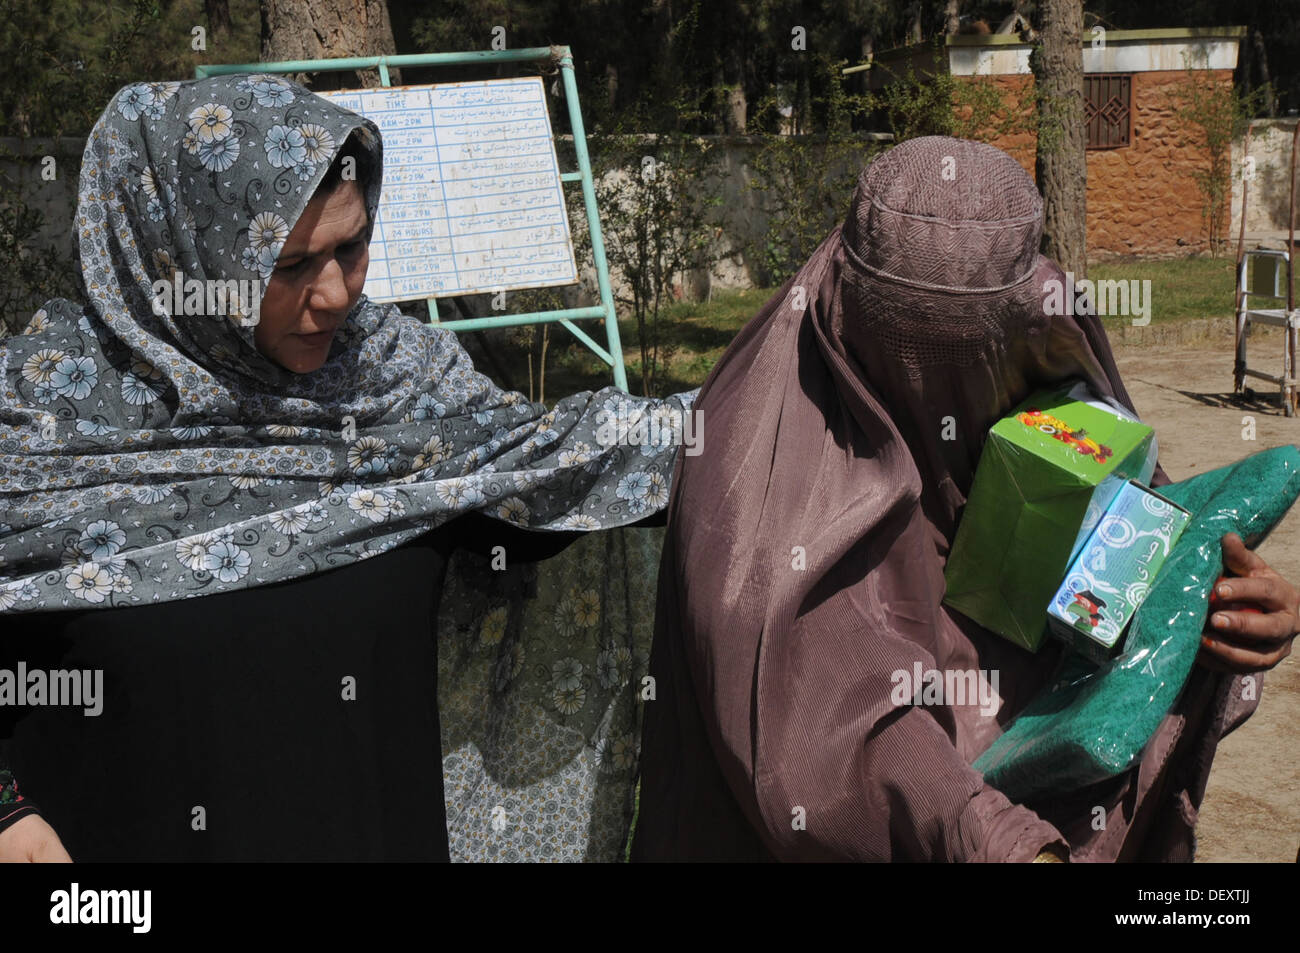 Sadiqa Jalali, directorate of women affairs, passes out humanitarian aide items after a women's shura in Tarnek - Stock Image